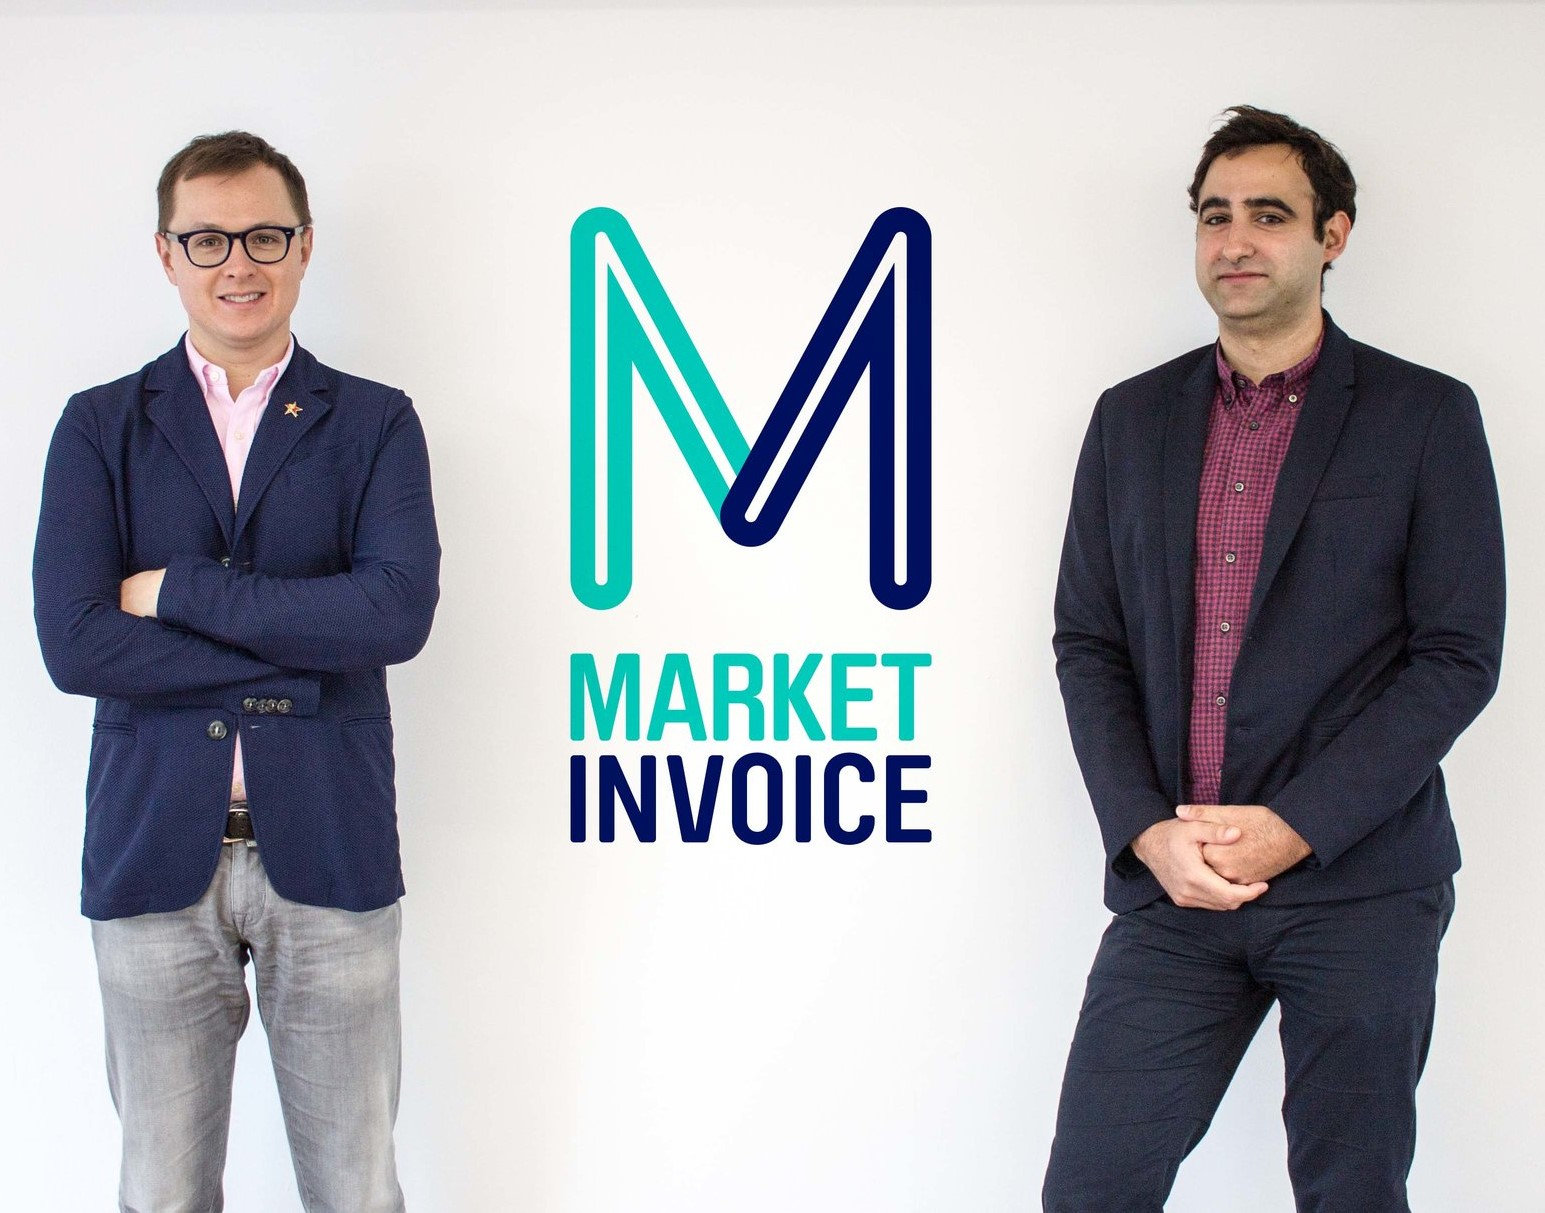 MarketInvoice launches credit insurance partnership to strengthen market confidence post-Brexit